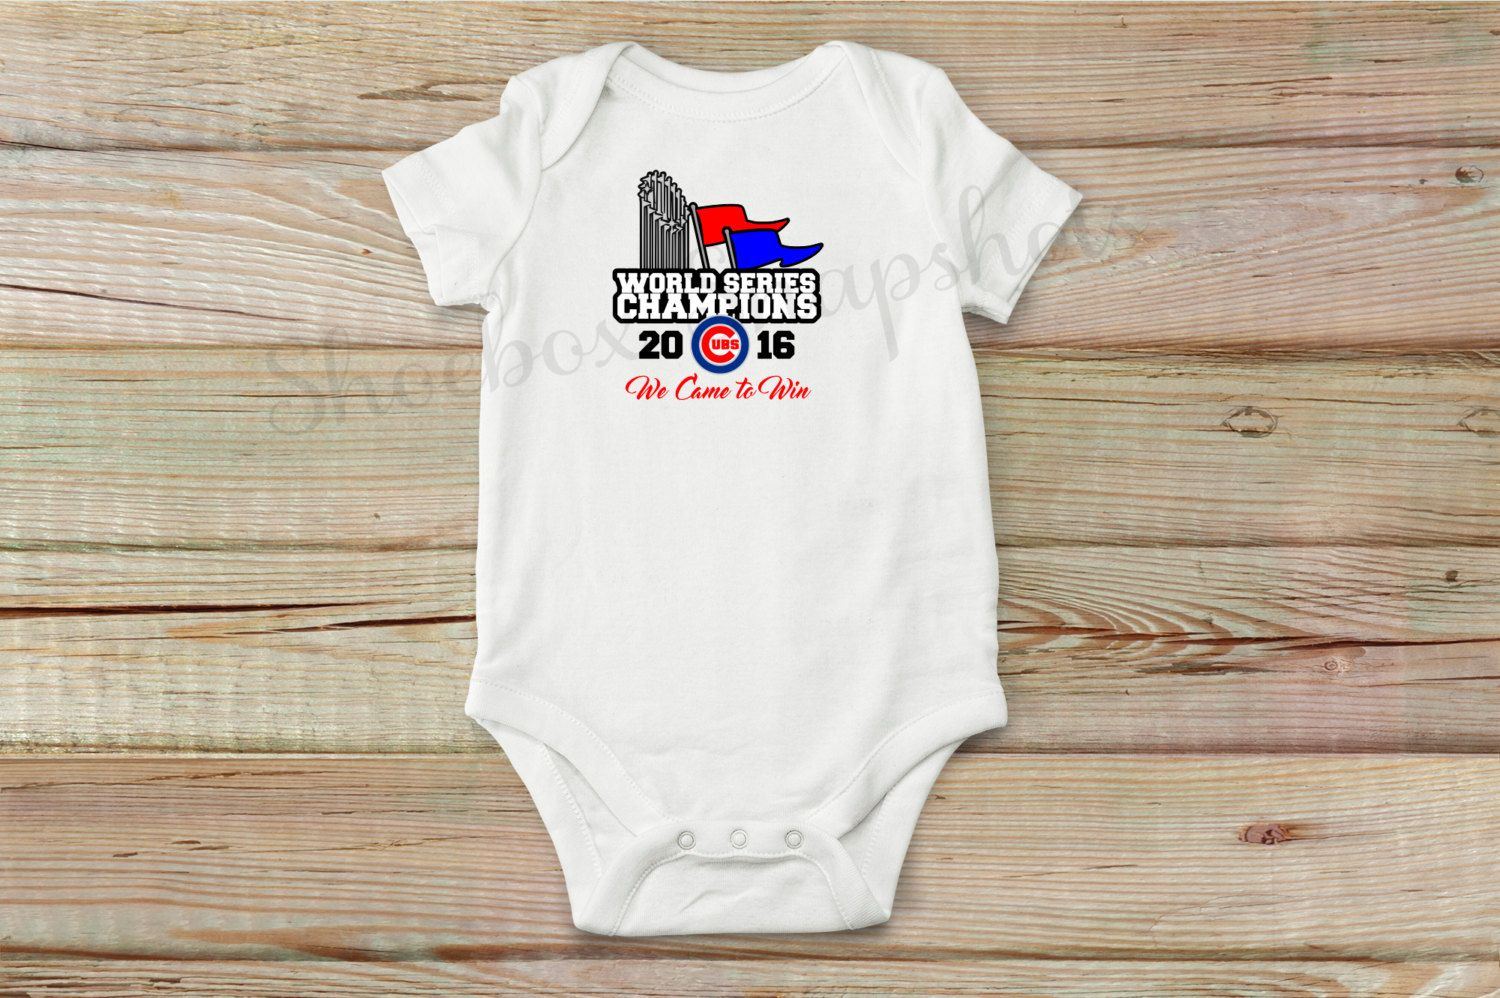 ff86b9690 ... Chicago Cubs World Series Champs Onesie, Cubs Baseball, Chicago Cubs, World  Series Championship ...